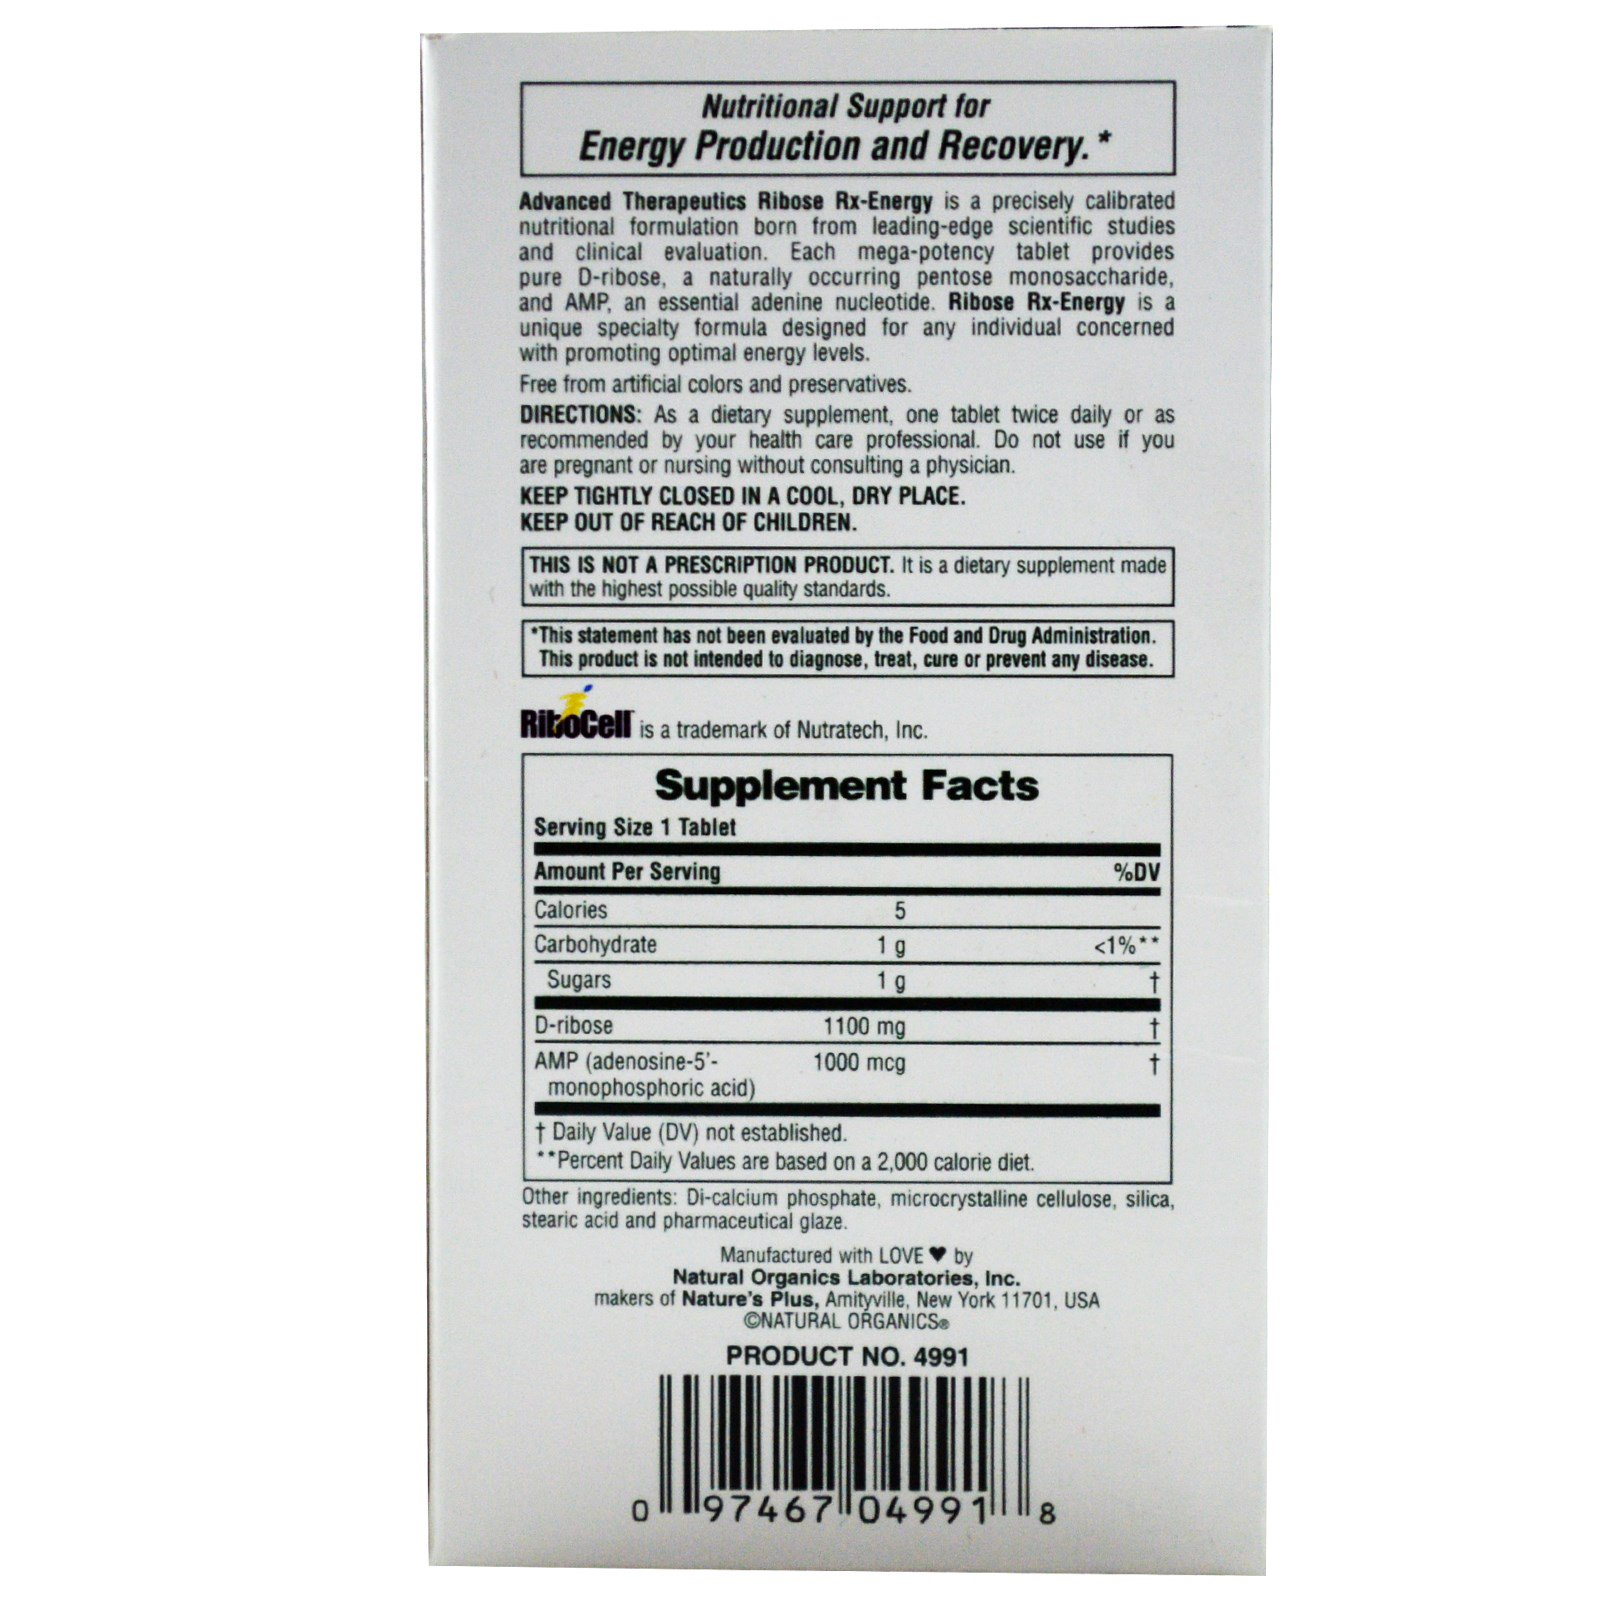 Remarkable Natures Plus Advanced Therapeutics Ribose Rx Energy 60 Tablets Discontinued Item Pabps2019 Chair Design Images Pabps2019Com